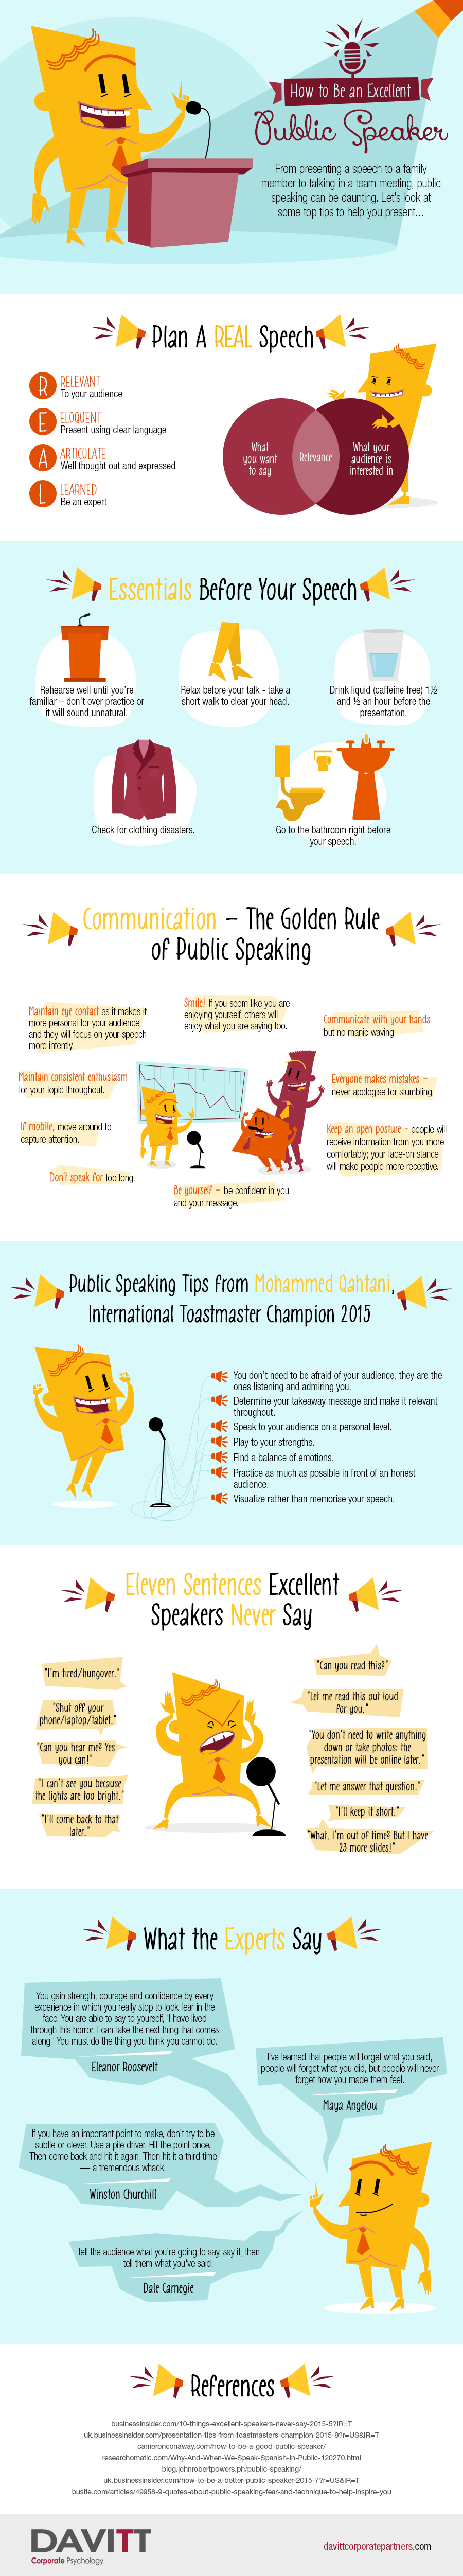 How to Be a Better Public Speaker Infographic